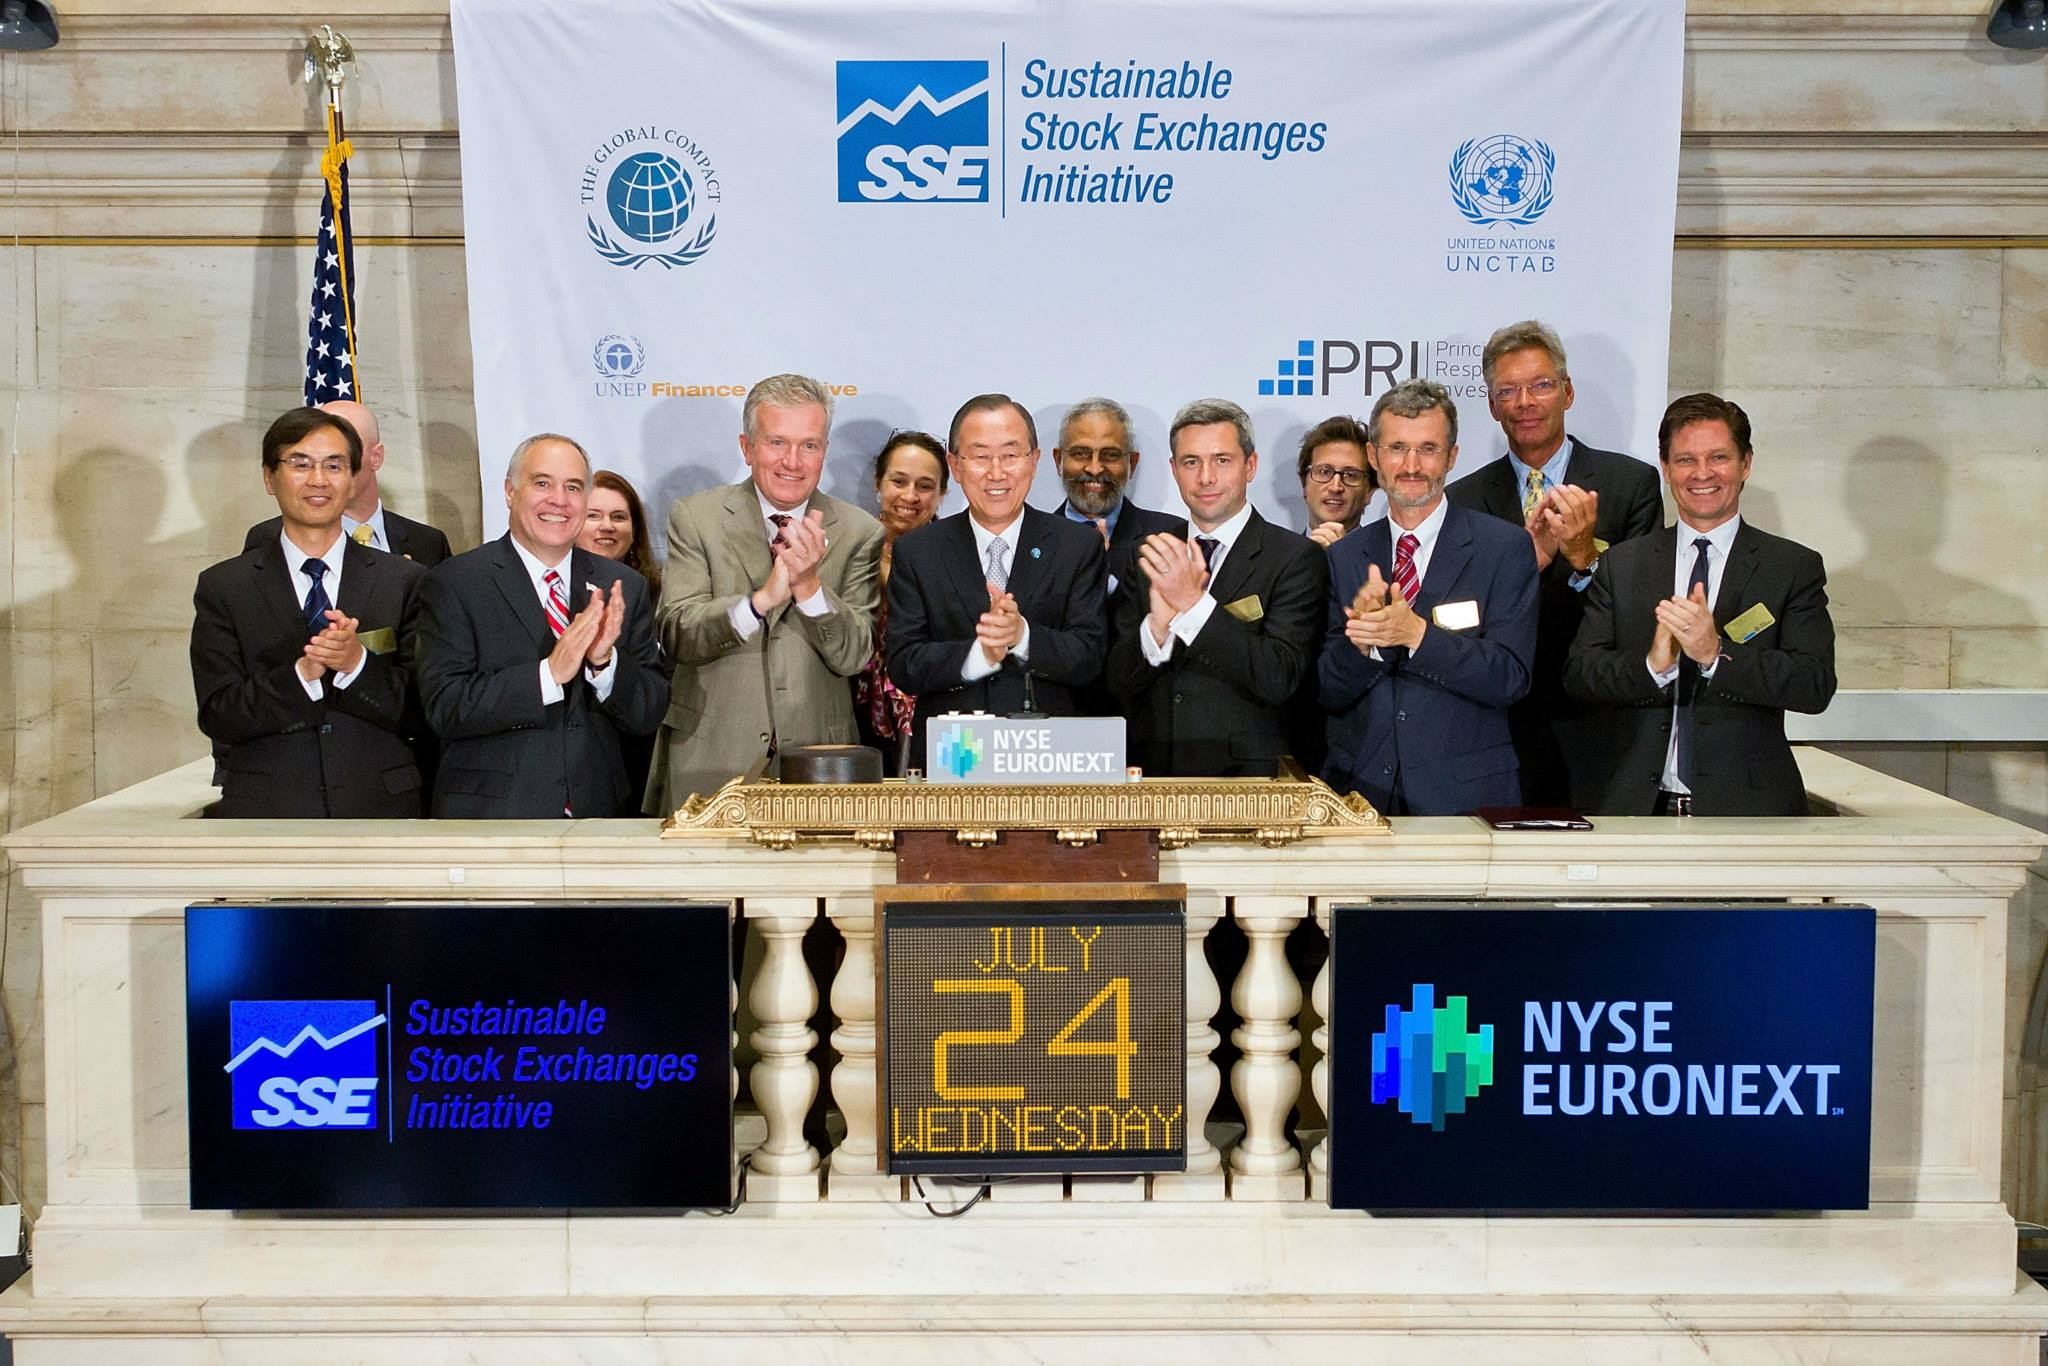 UN Secretary-General Ban Ki-moon rings the closing bell at NYSE Euronext to commemorate the exchange group's joining the United Nations Sustainable Stock Exchanges (SSE).